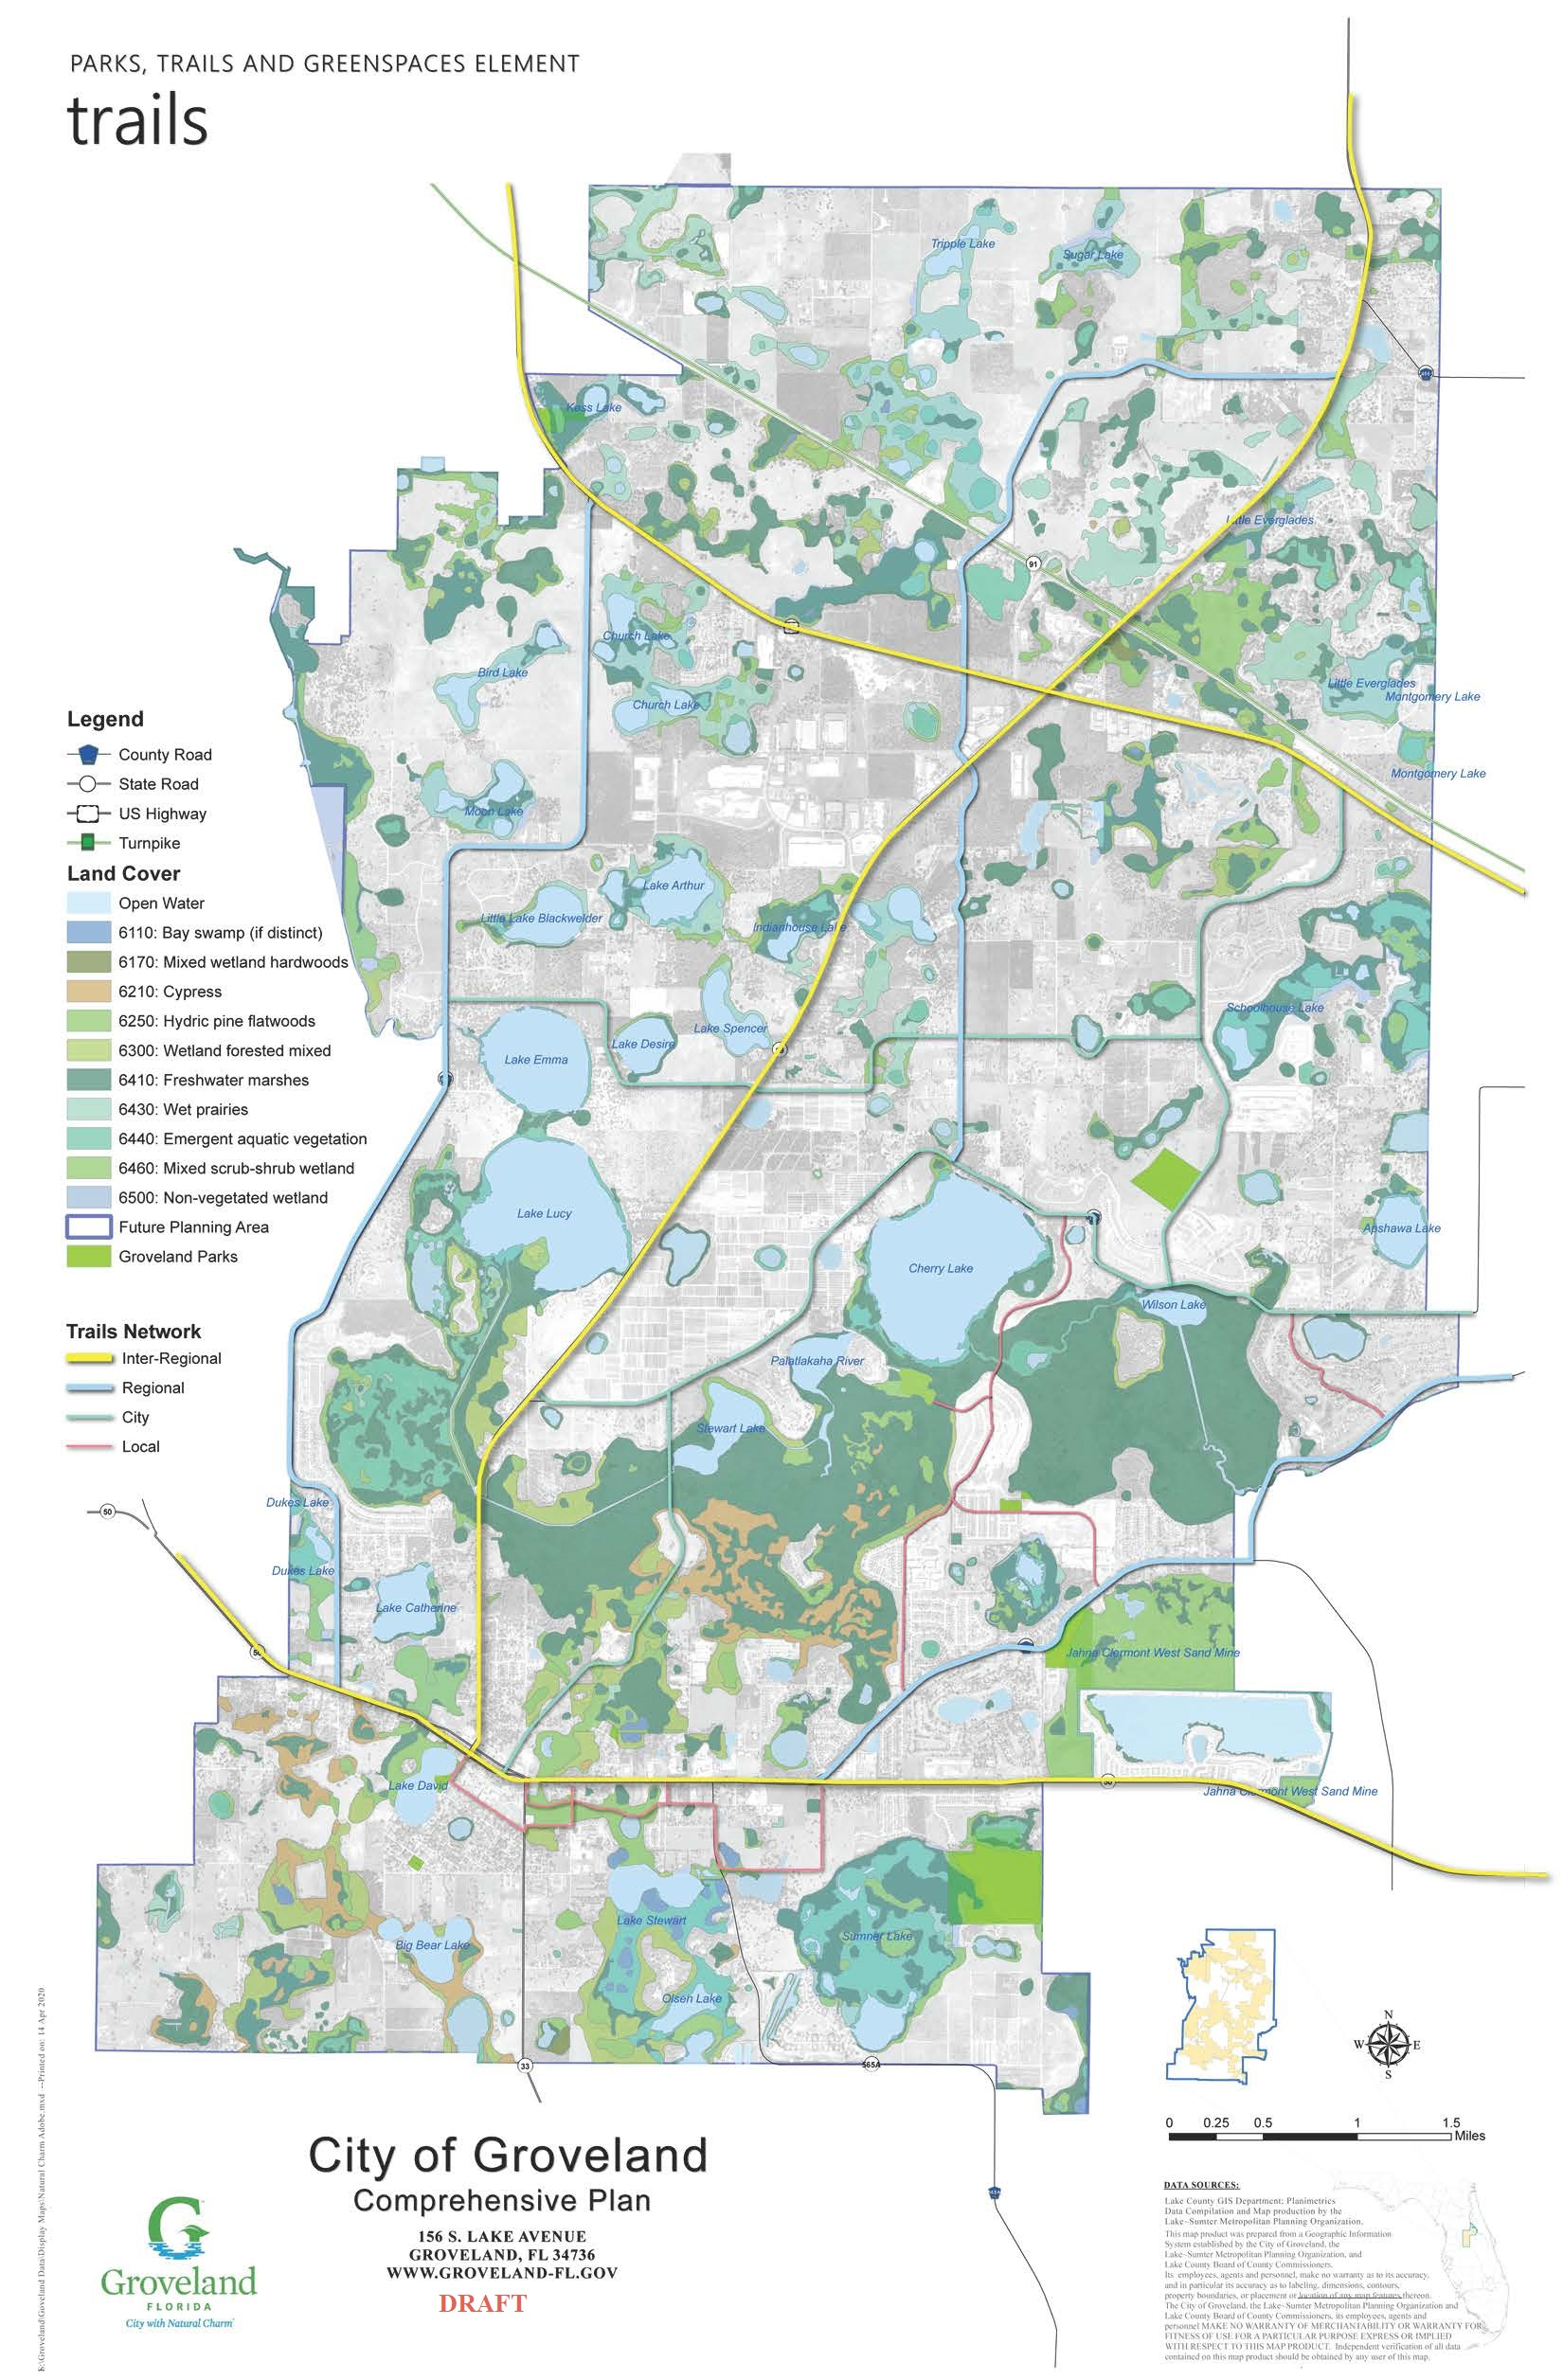 Early Draft Parks and Trails Plan